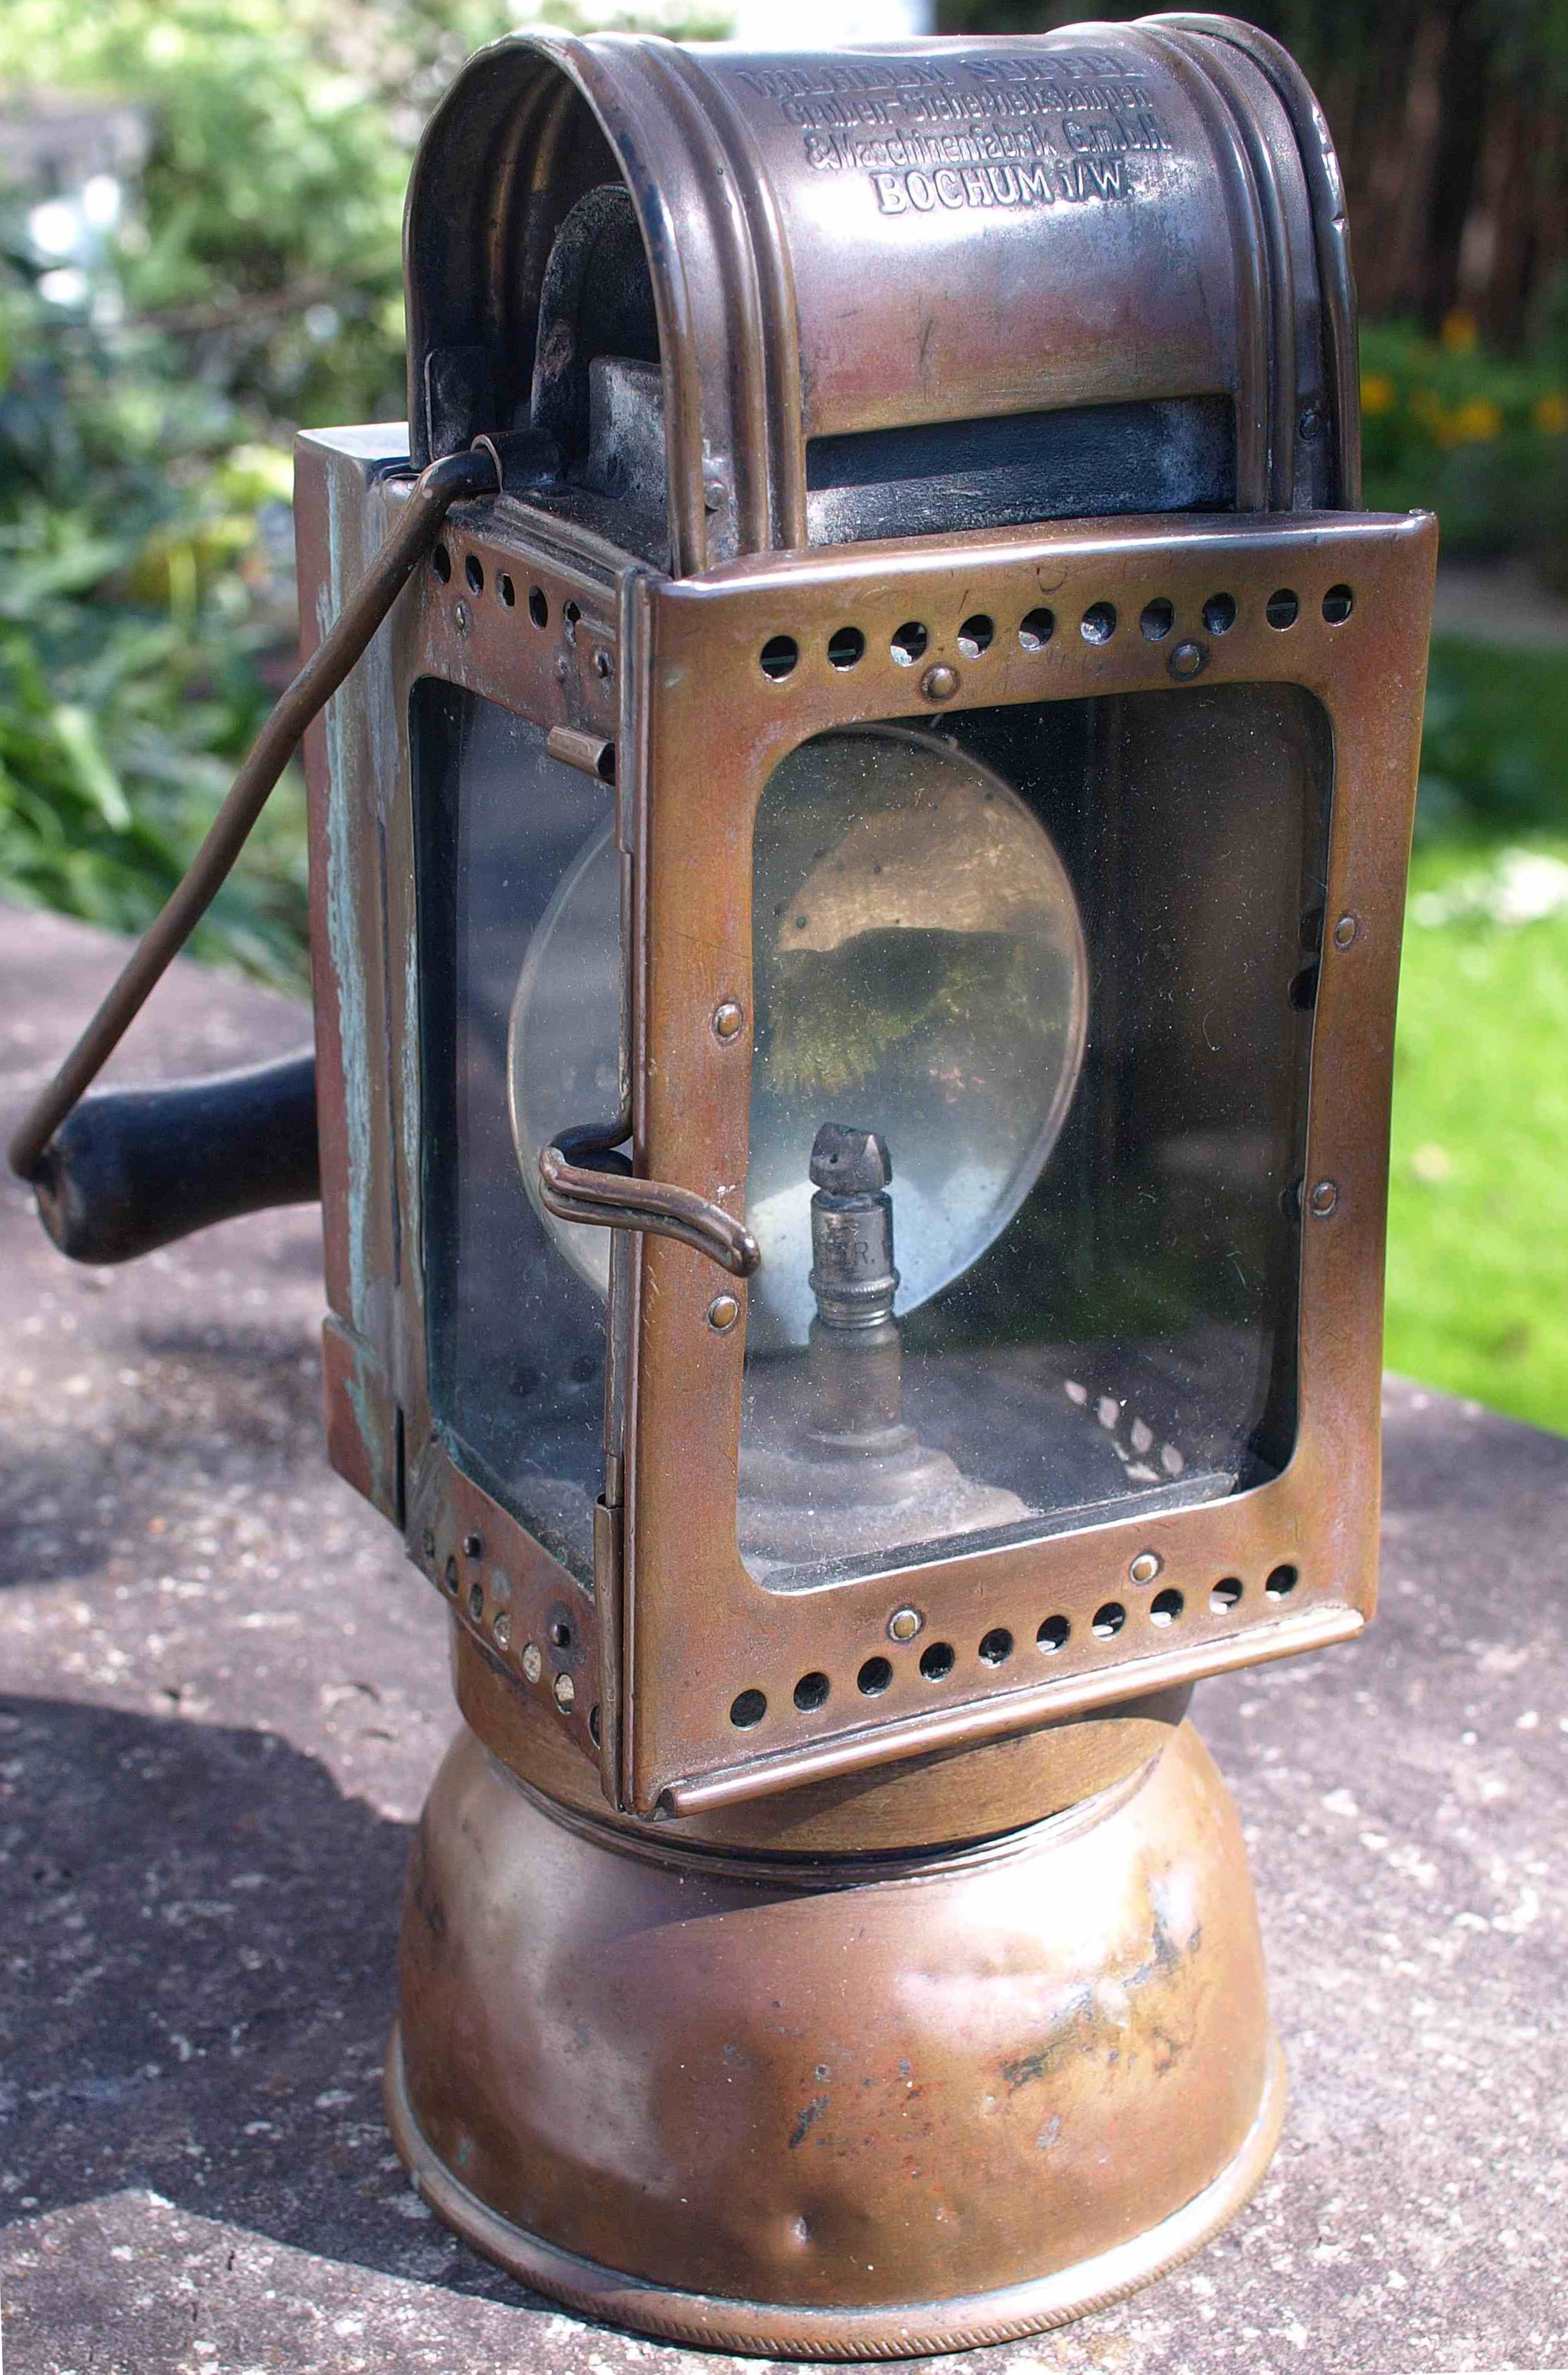 File:Carbide Lamp